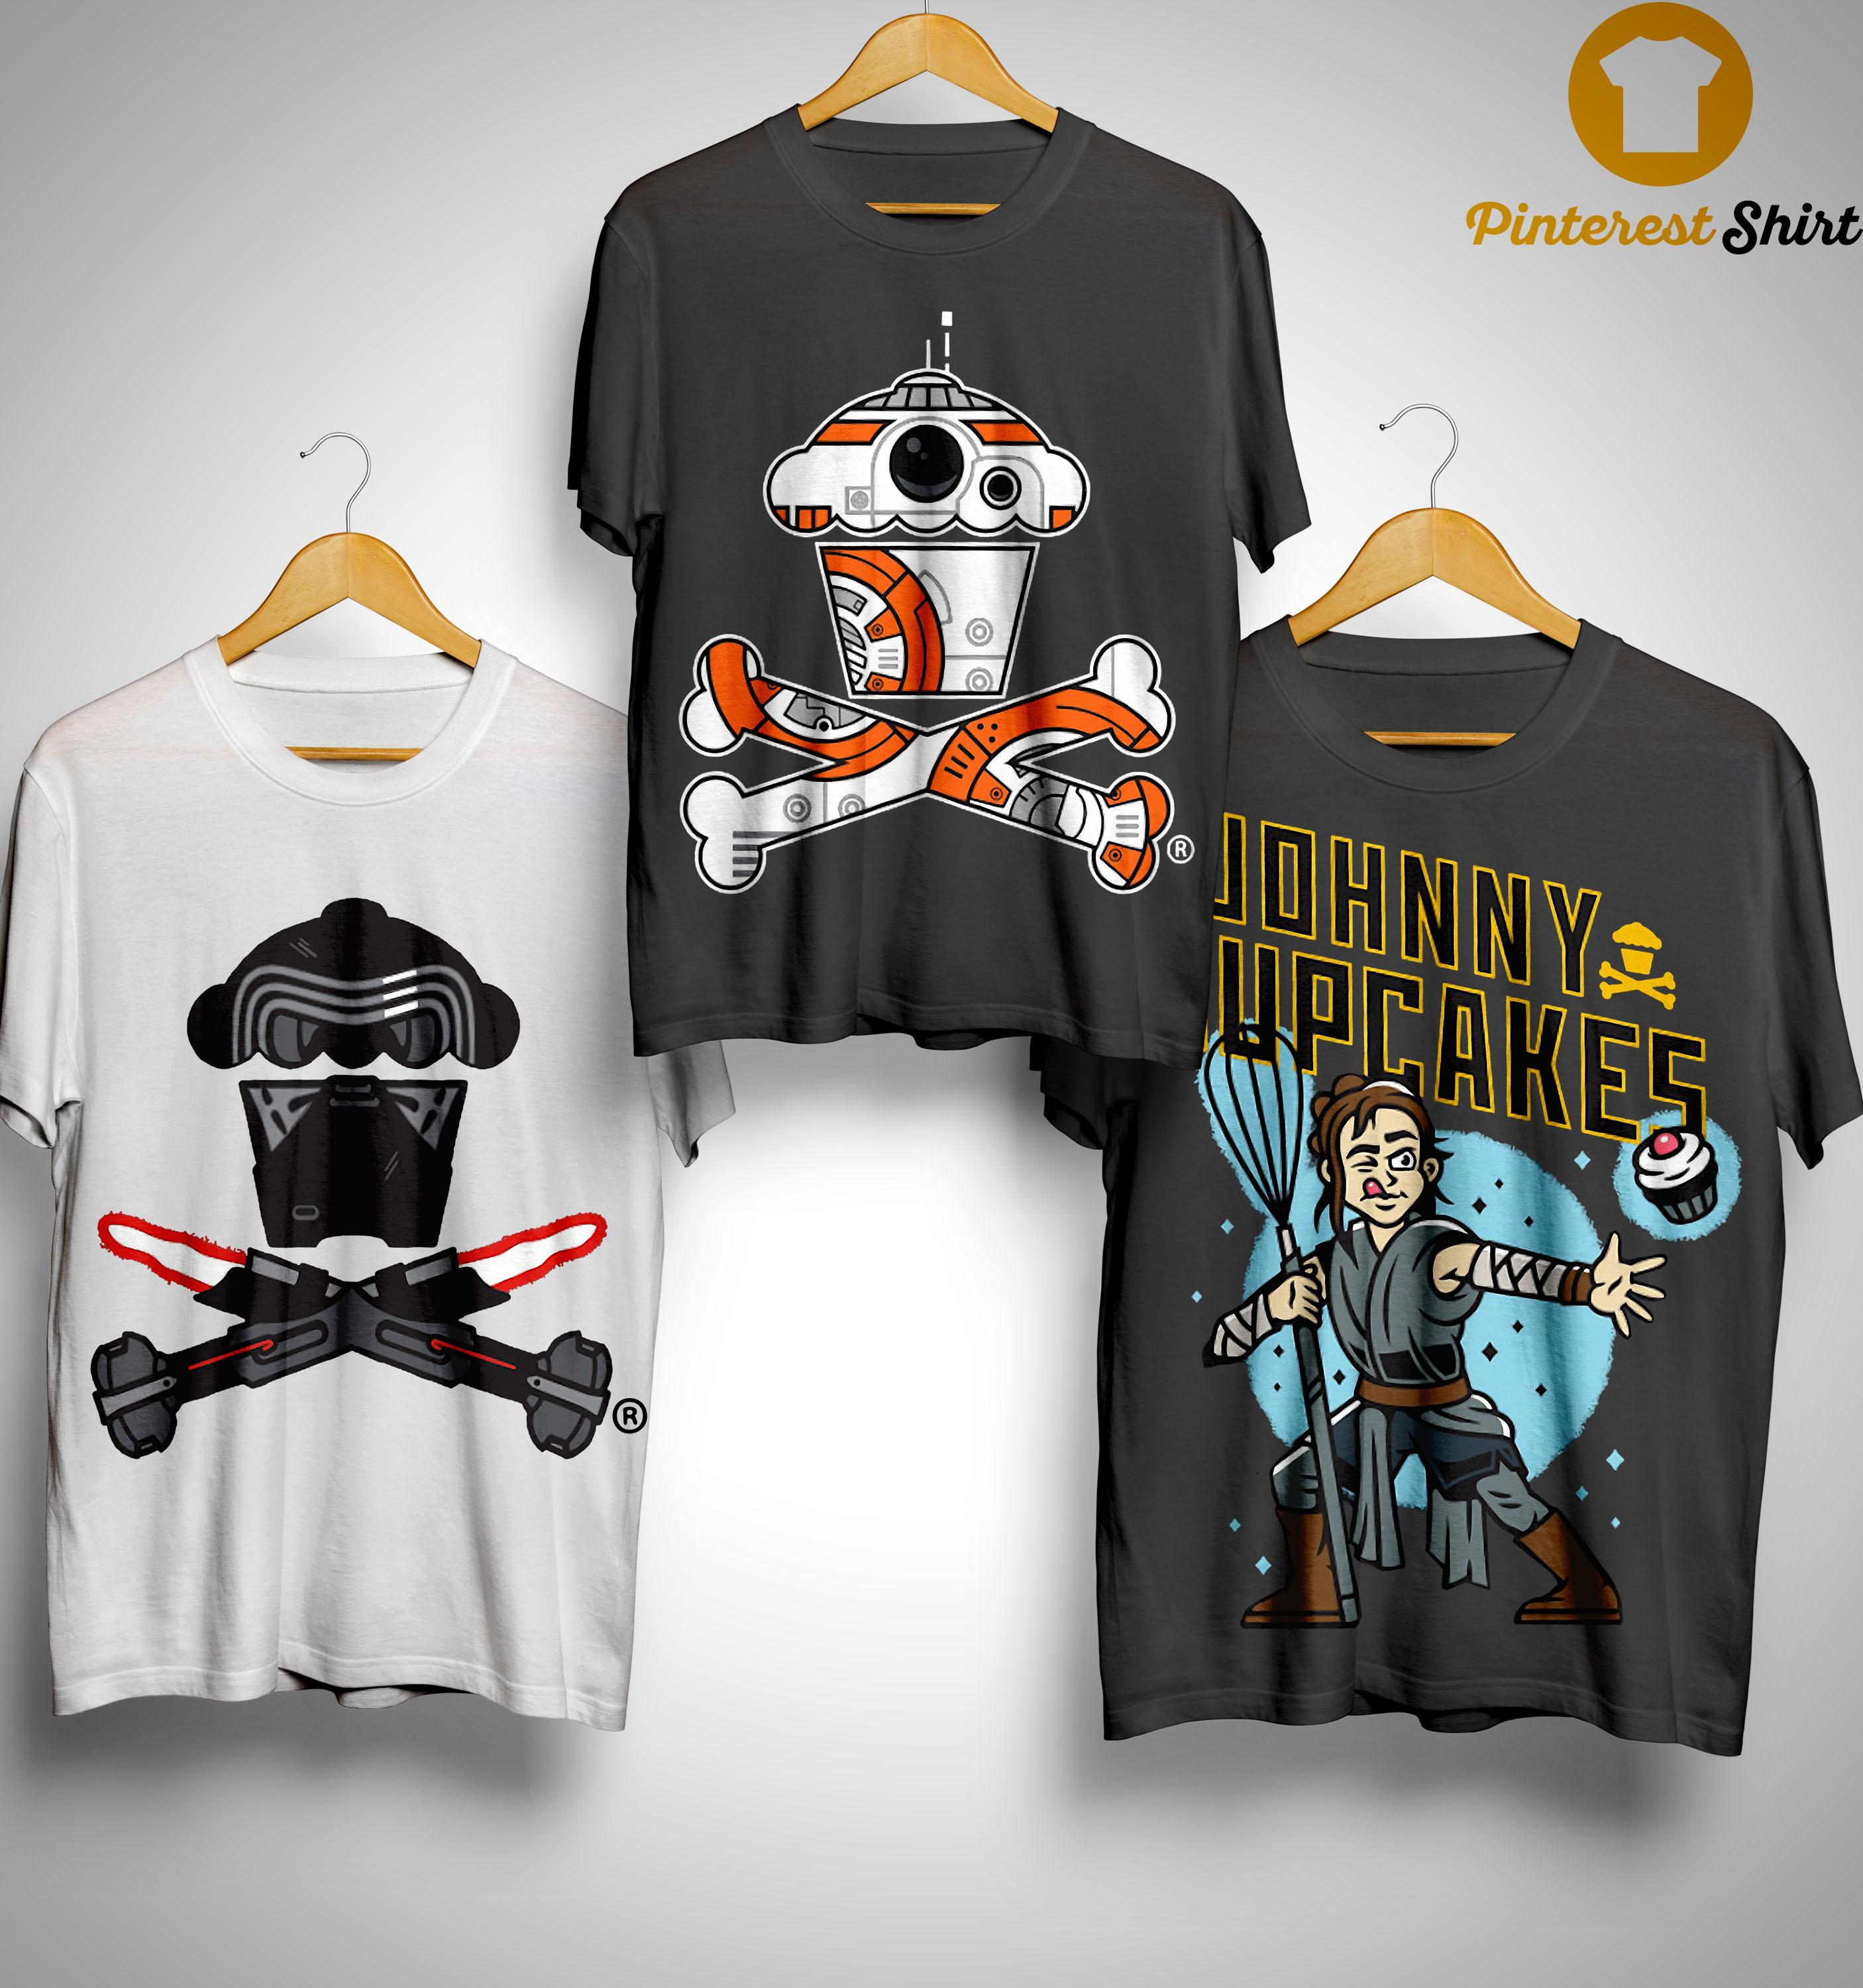 Johnny Cupcakes Star Wars The Rise Of Skywalker T Shirt Sweater And Hoodie Pinterest Shirt